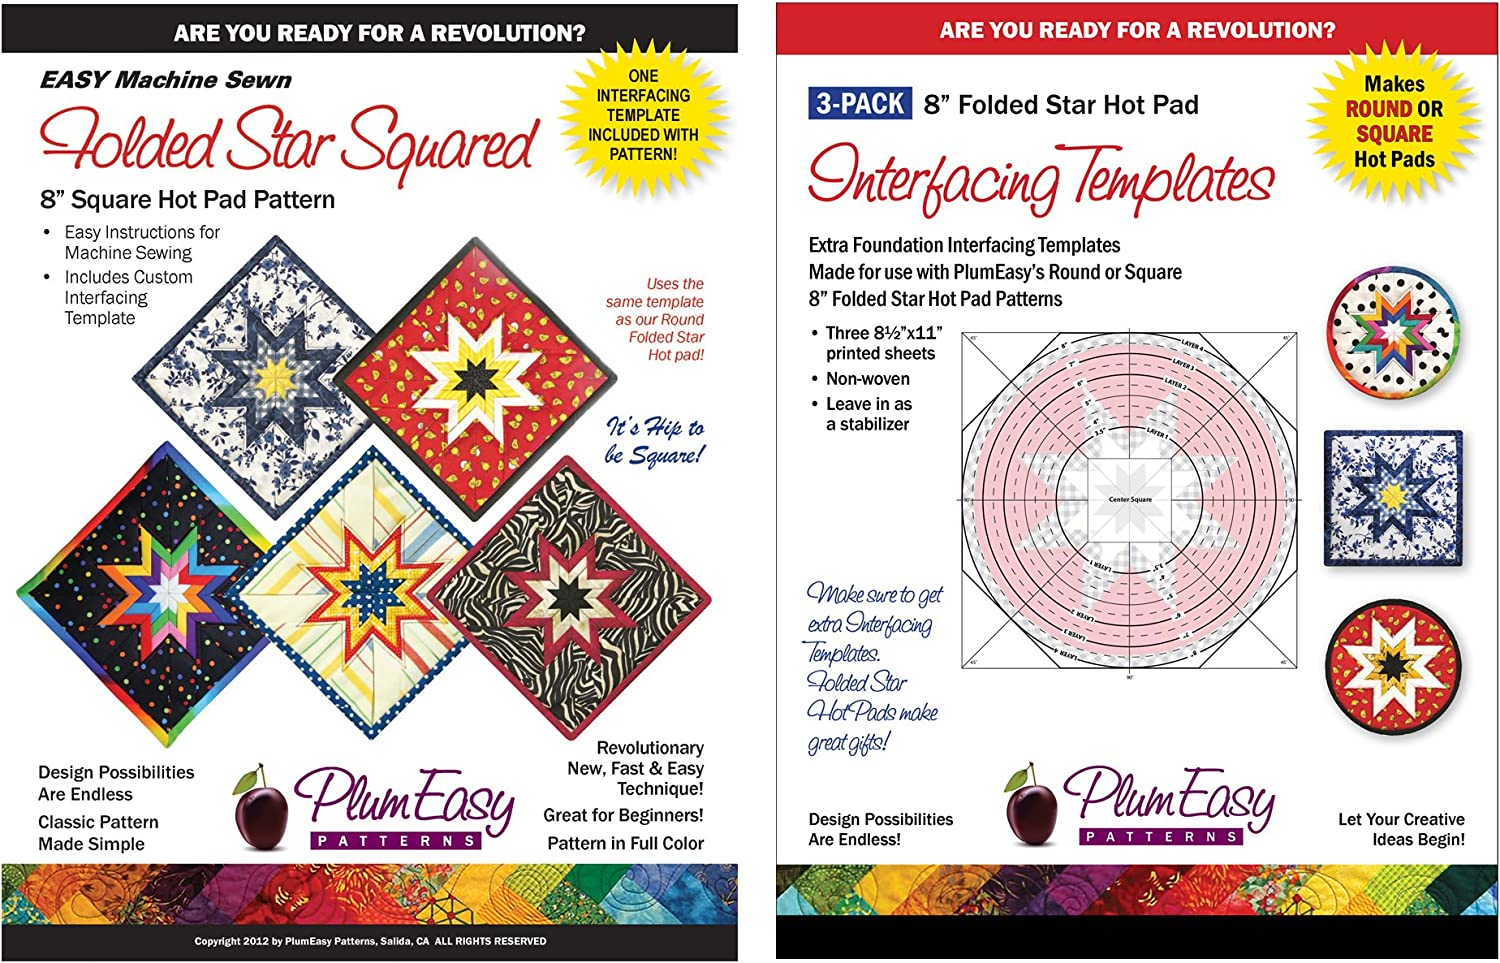 Folded Star 8-inch Hot Pad Interfacing Templates 12-pack 12 Custom-printed 8.5 X 11 Interfacing Templates Made for Use with Plumeasys Round or Square Folded Star Patterns by PlumEasy Patterns